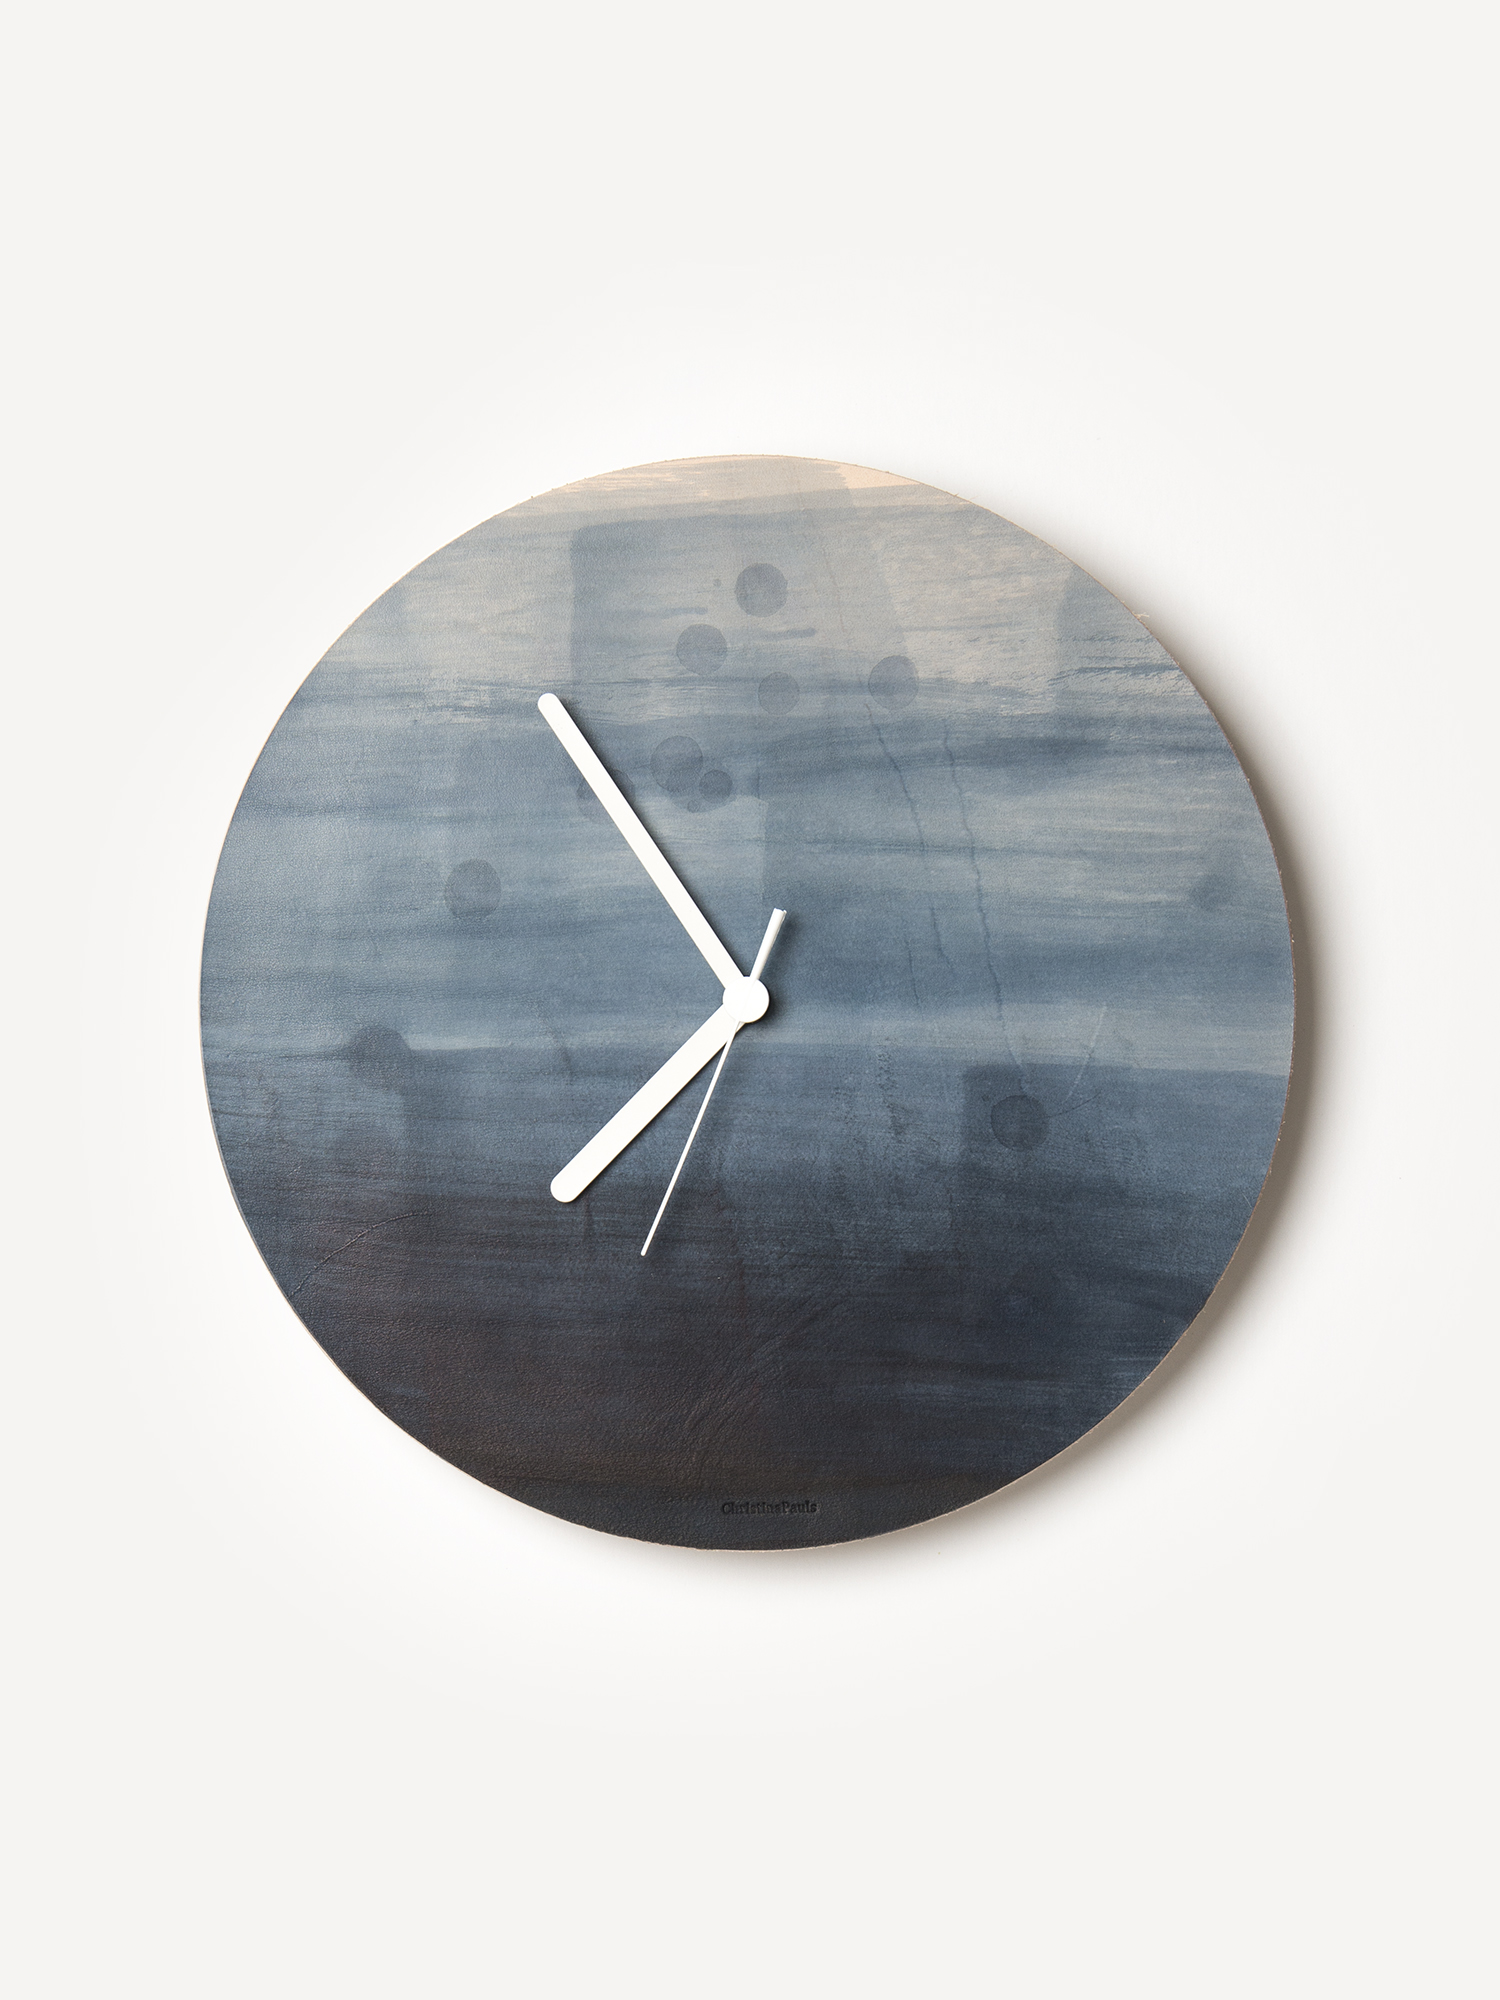 Leder-Wanduhr Ino  Leather wall clock Ino